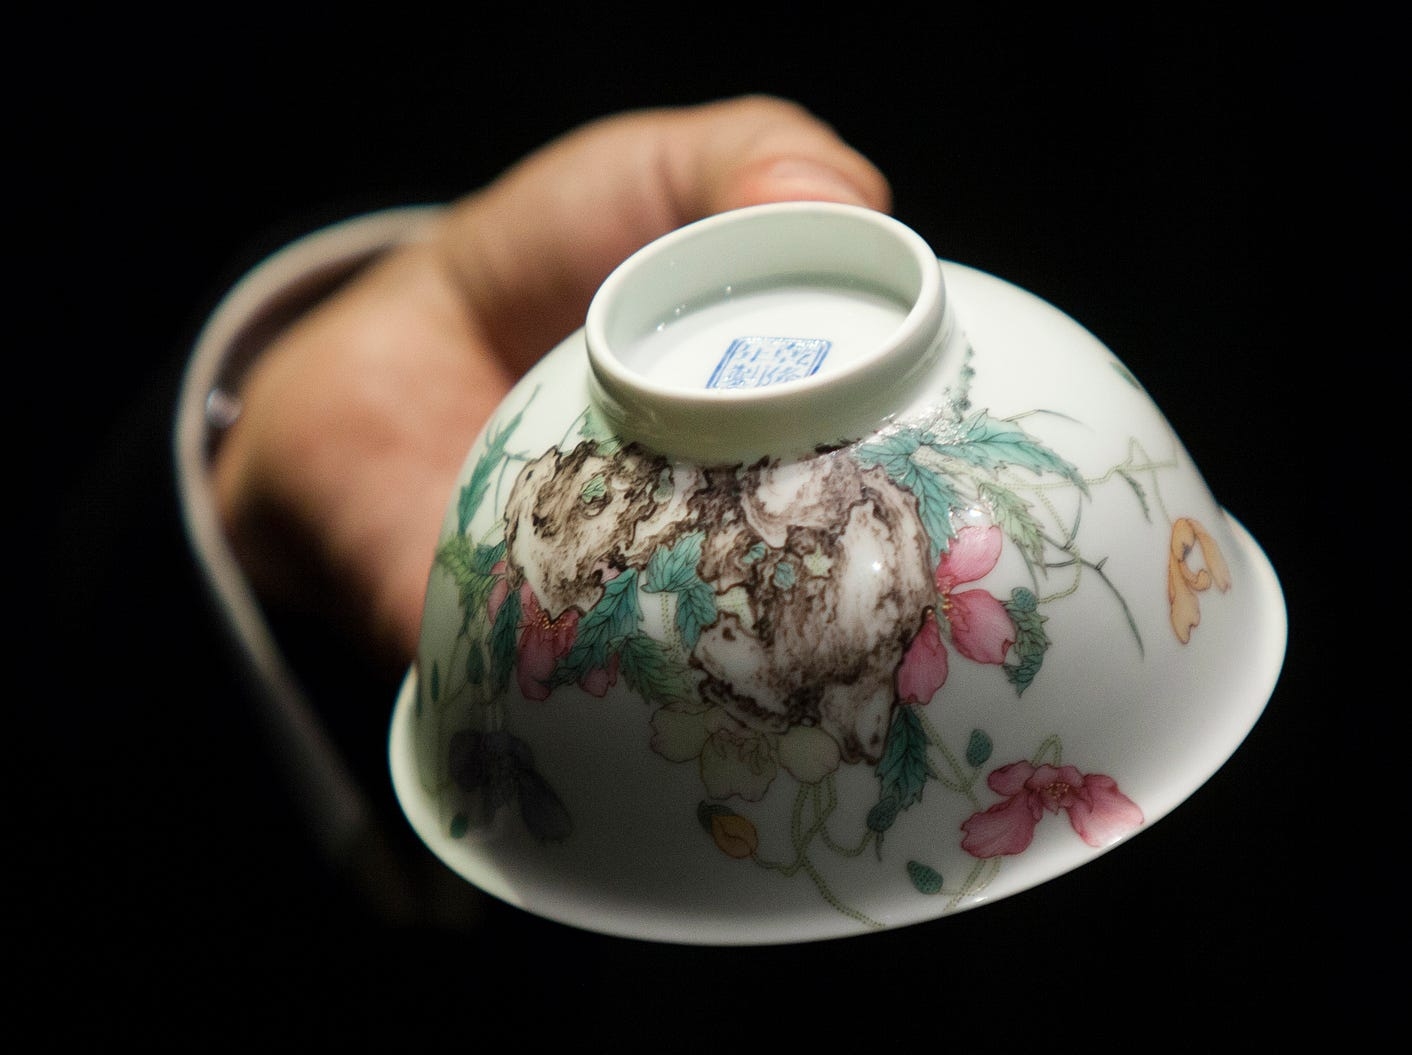 A staff member from Sotheby's auction house displays the Falangcai Poppy Bowl, which according to Sotheby's is one of the greatest examples of Qianlong Falangcai porcelain in private hands, in Hong Kong, China.